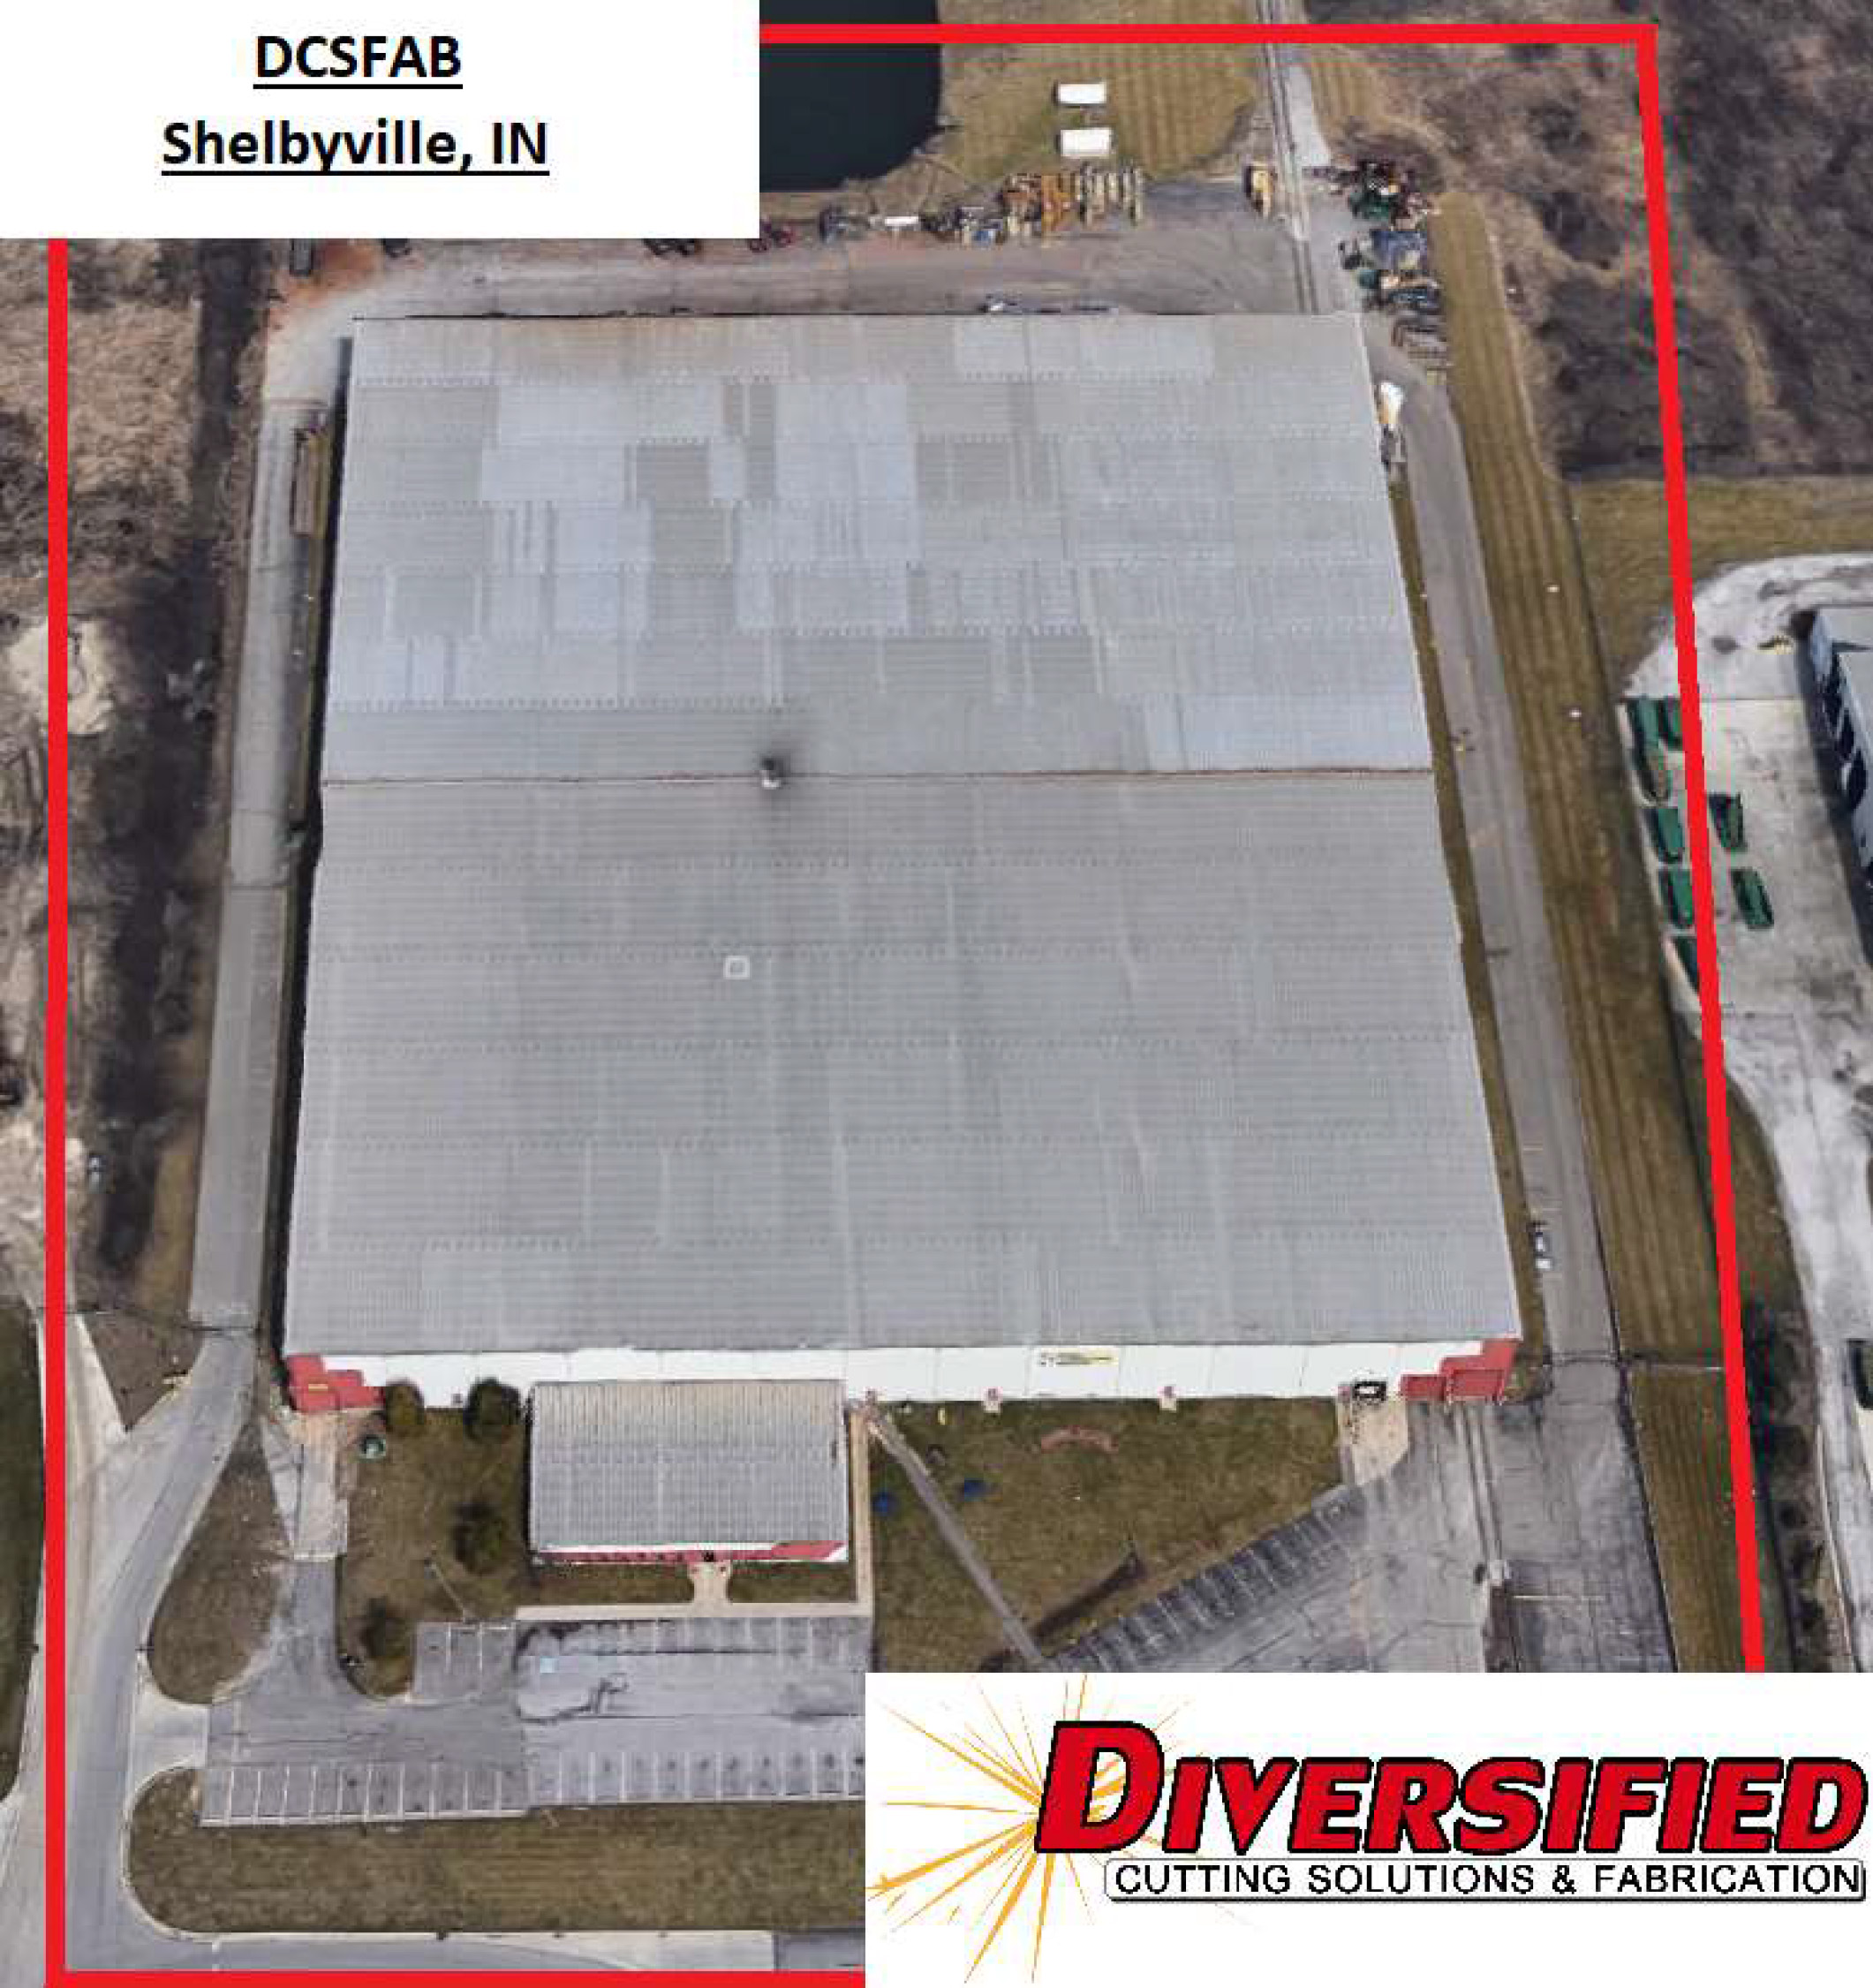 DCSFAB - SHELBYVILLE OVERVIEW